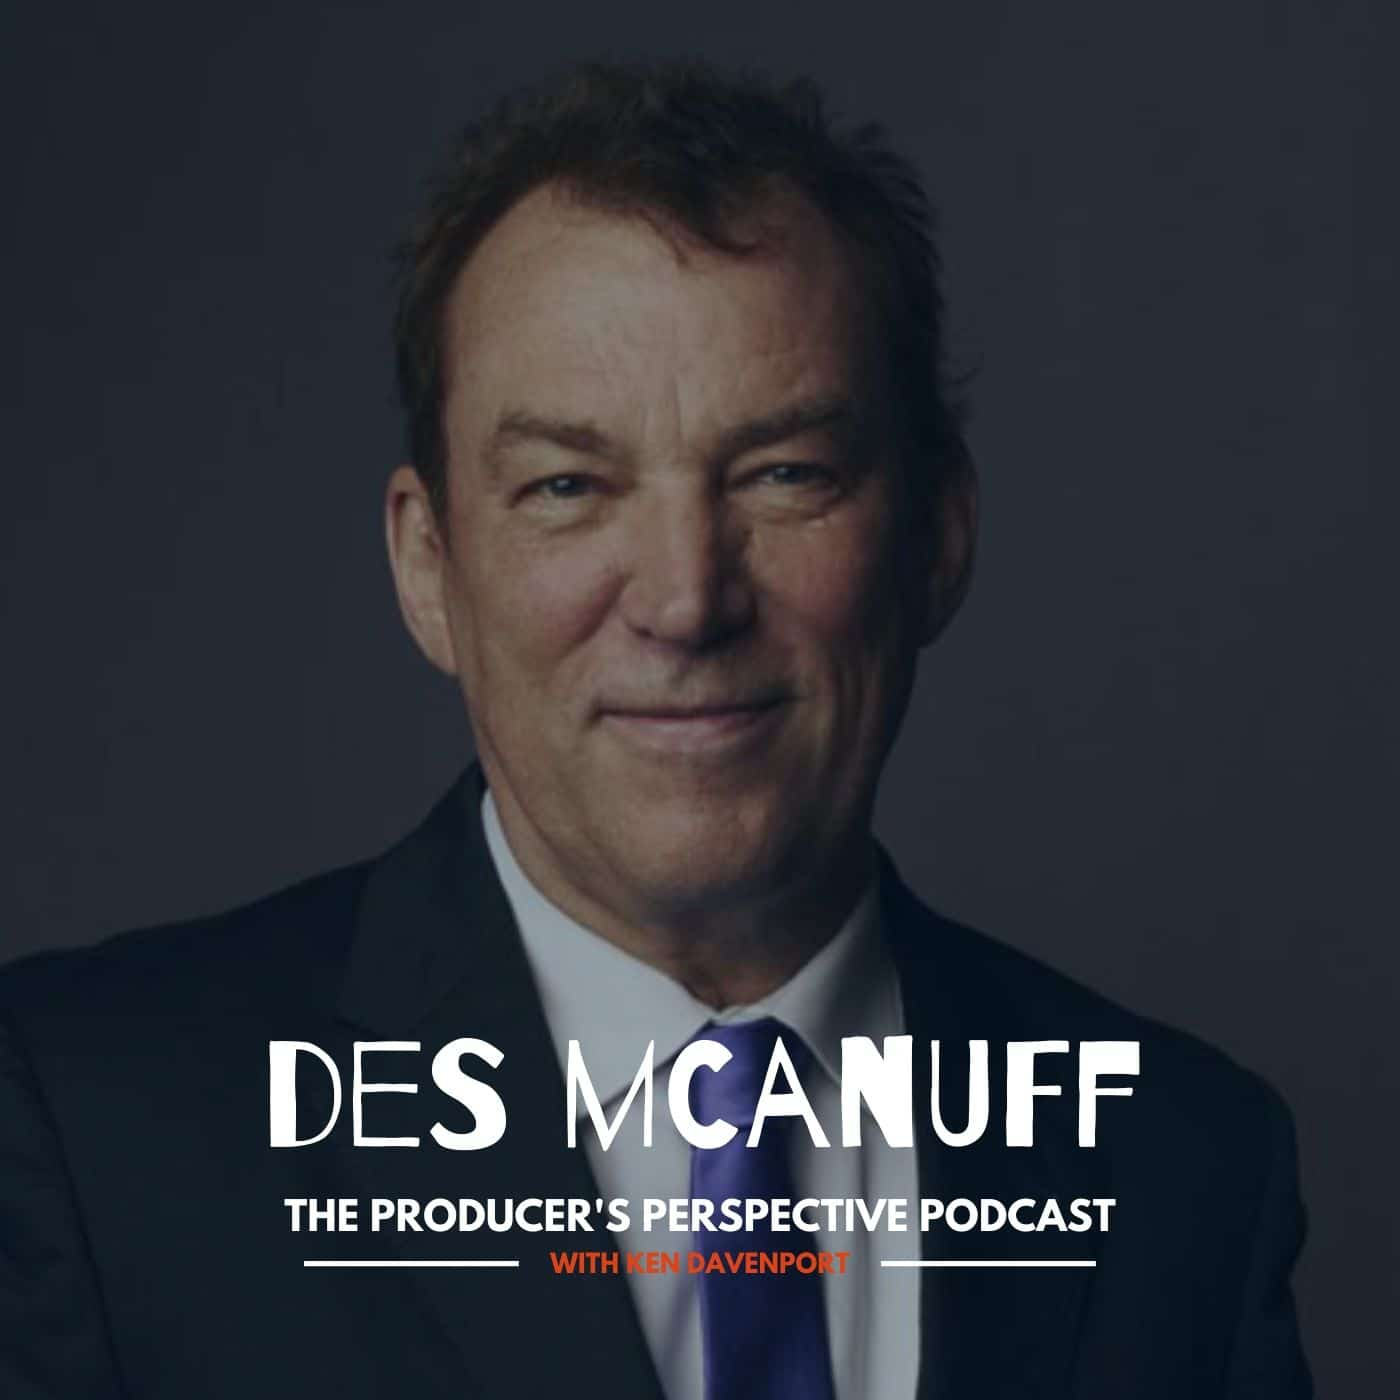 Ken Davenport's The Producer's Perspective Podcast Episode 53 - Des McAnuff